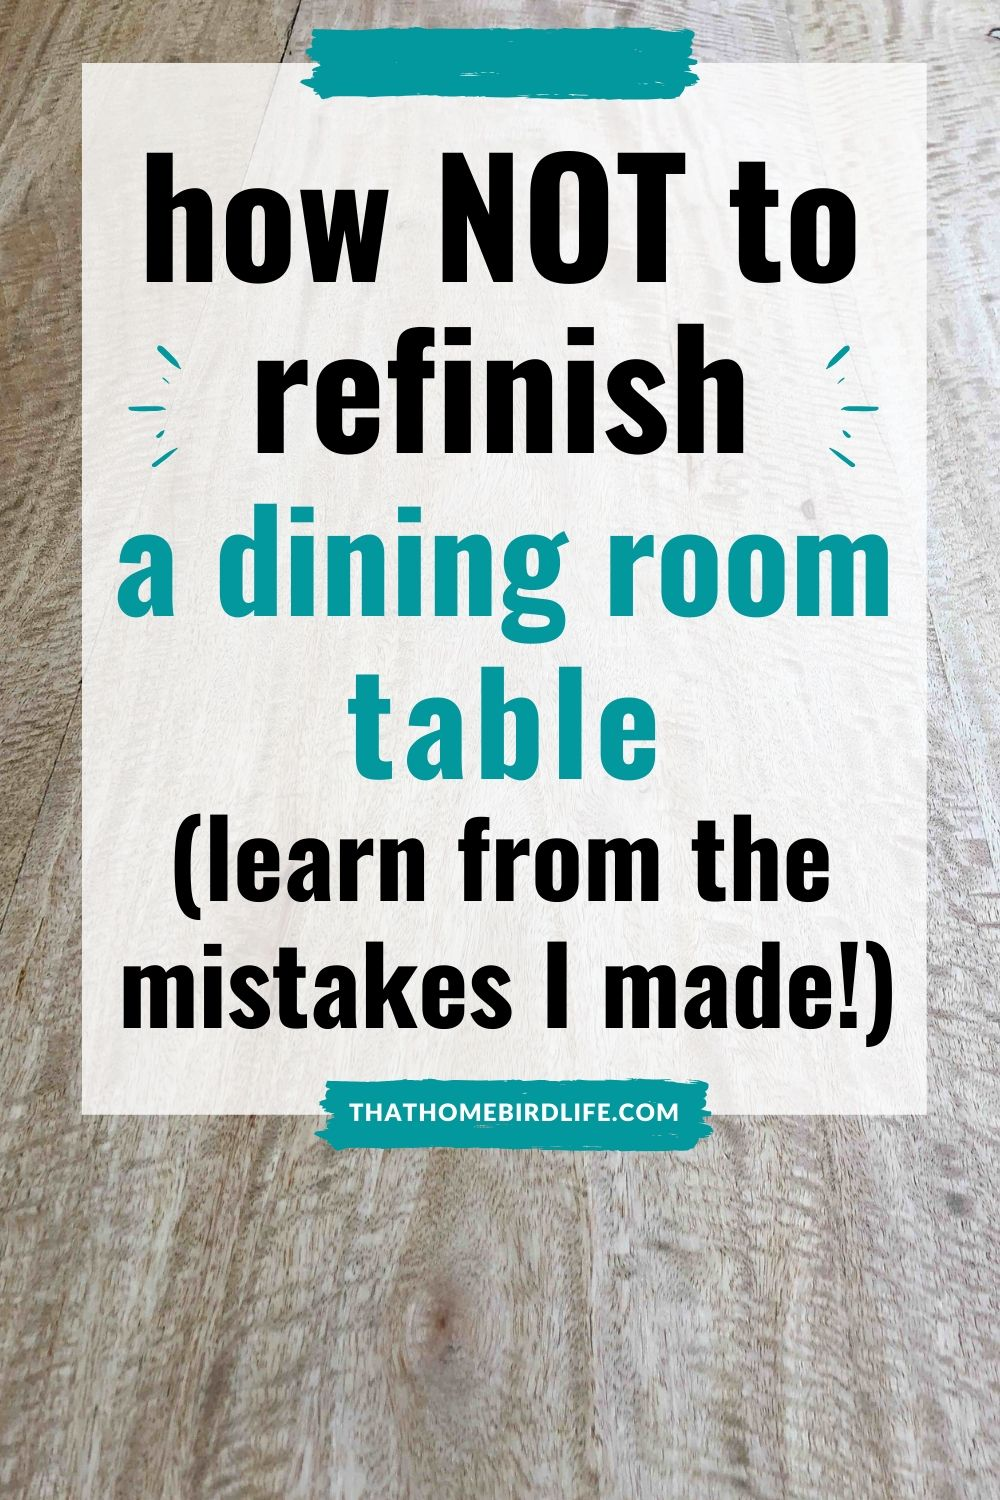 how not to refinish a dining room table